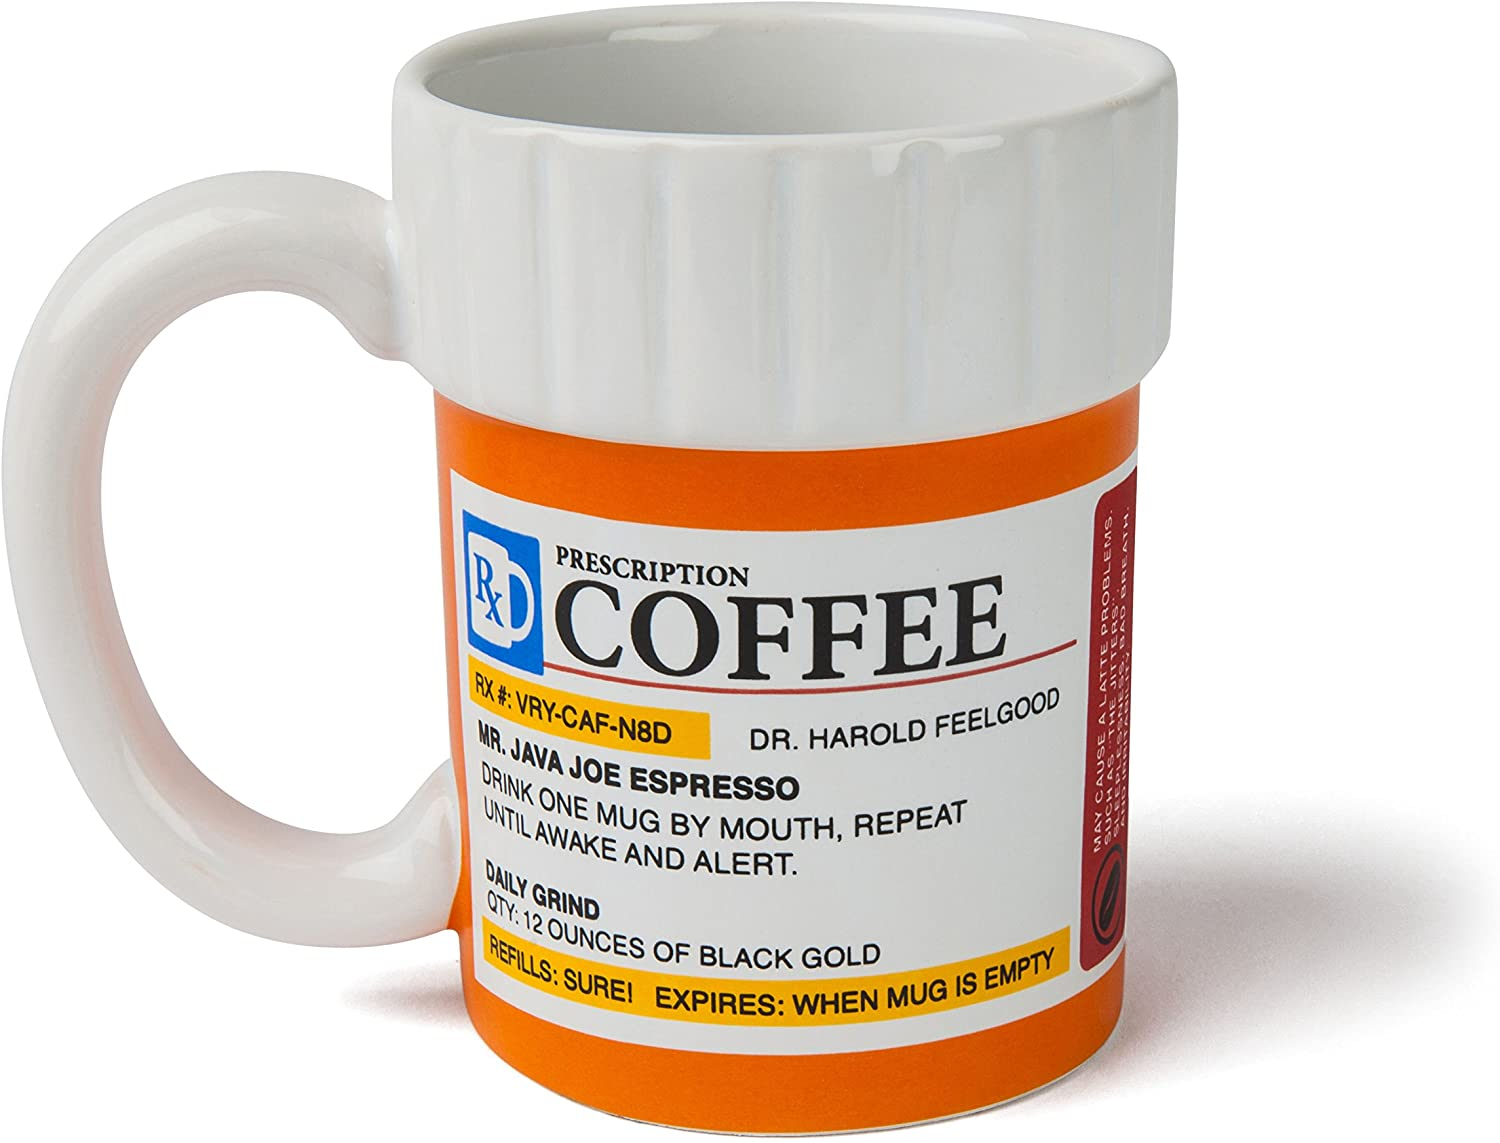 BigMouth Inc prescription coffee mug